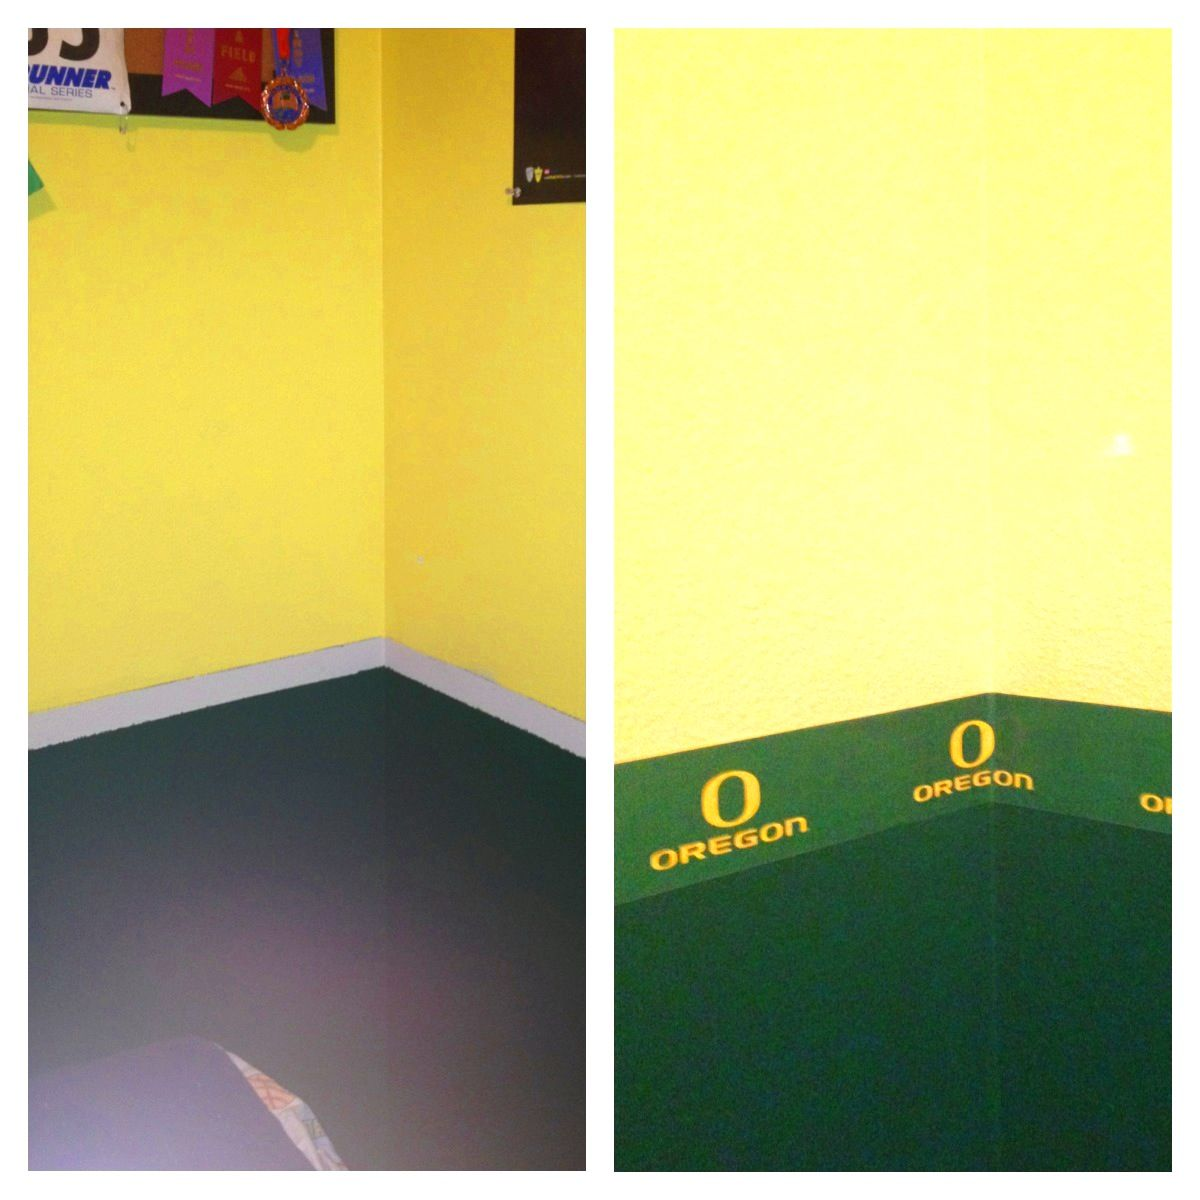 We Needed To Tie The 2 Paint Colors Together. With Rounded